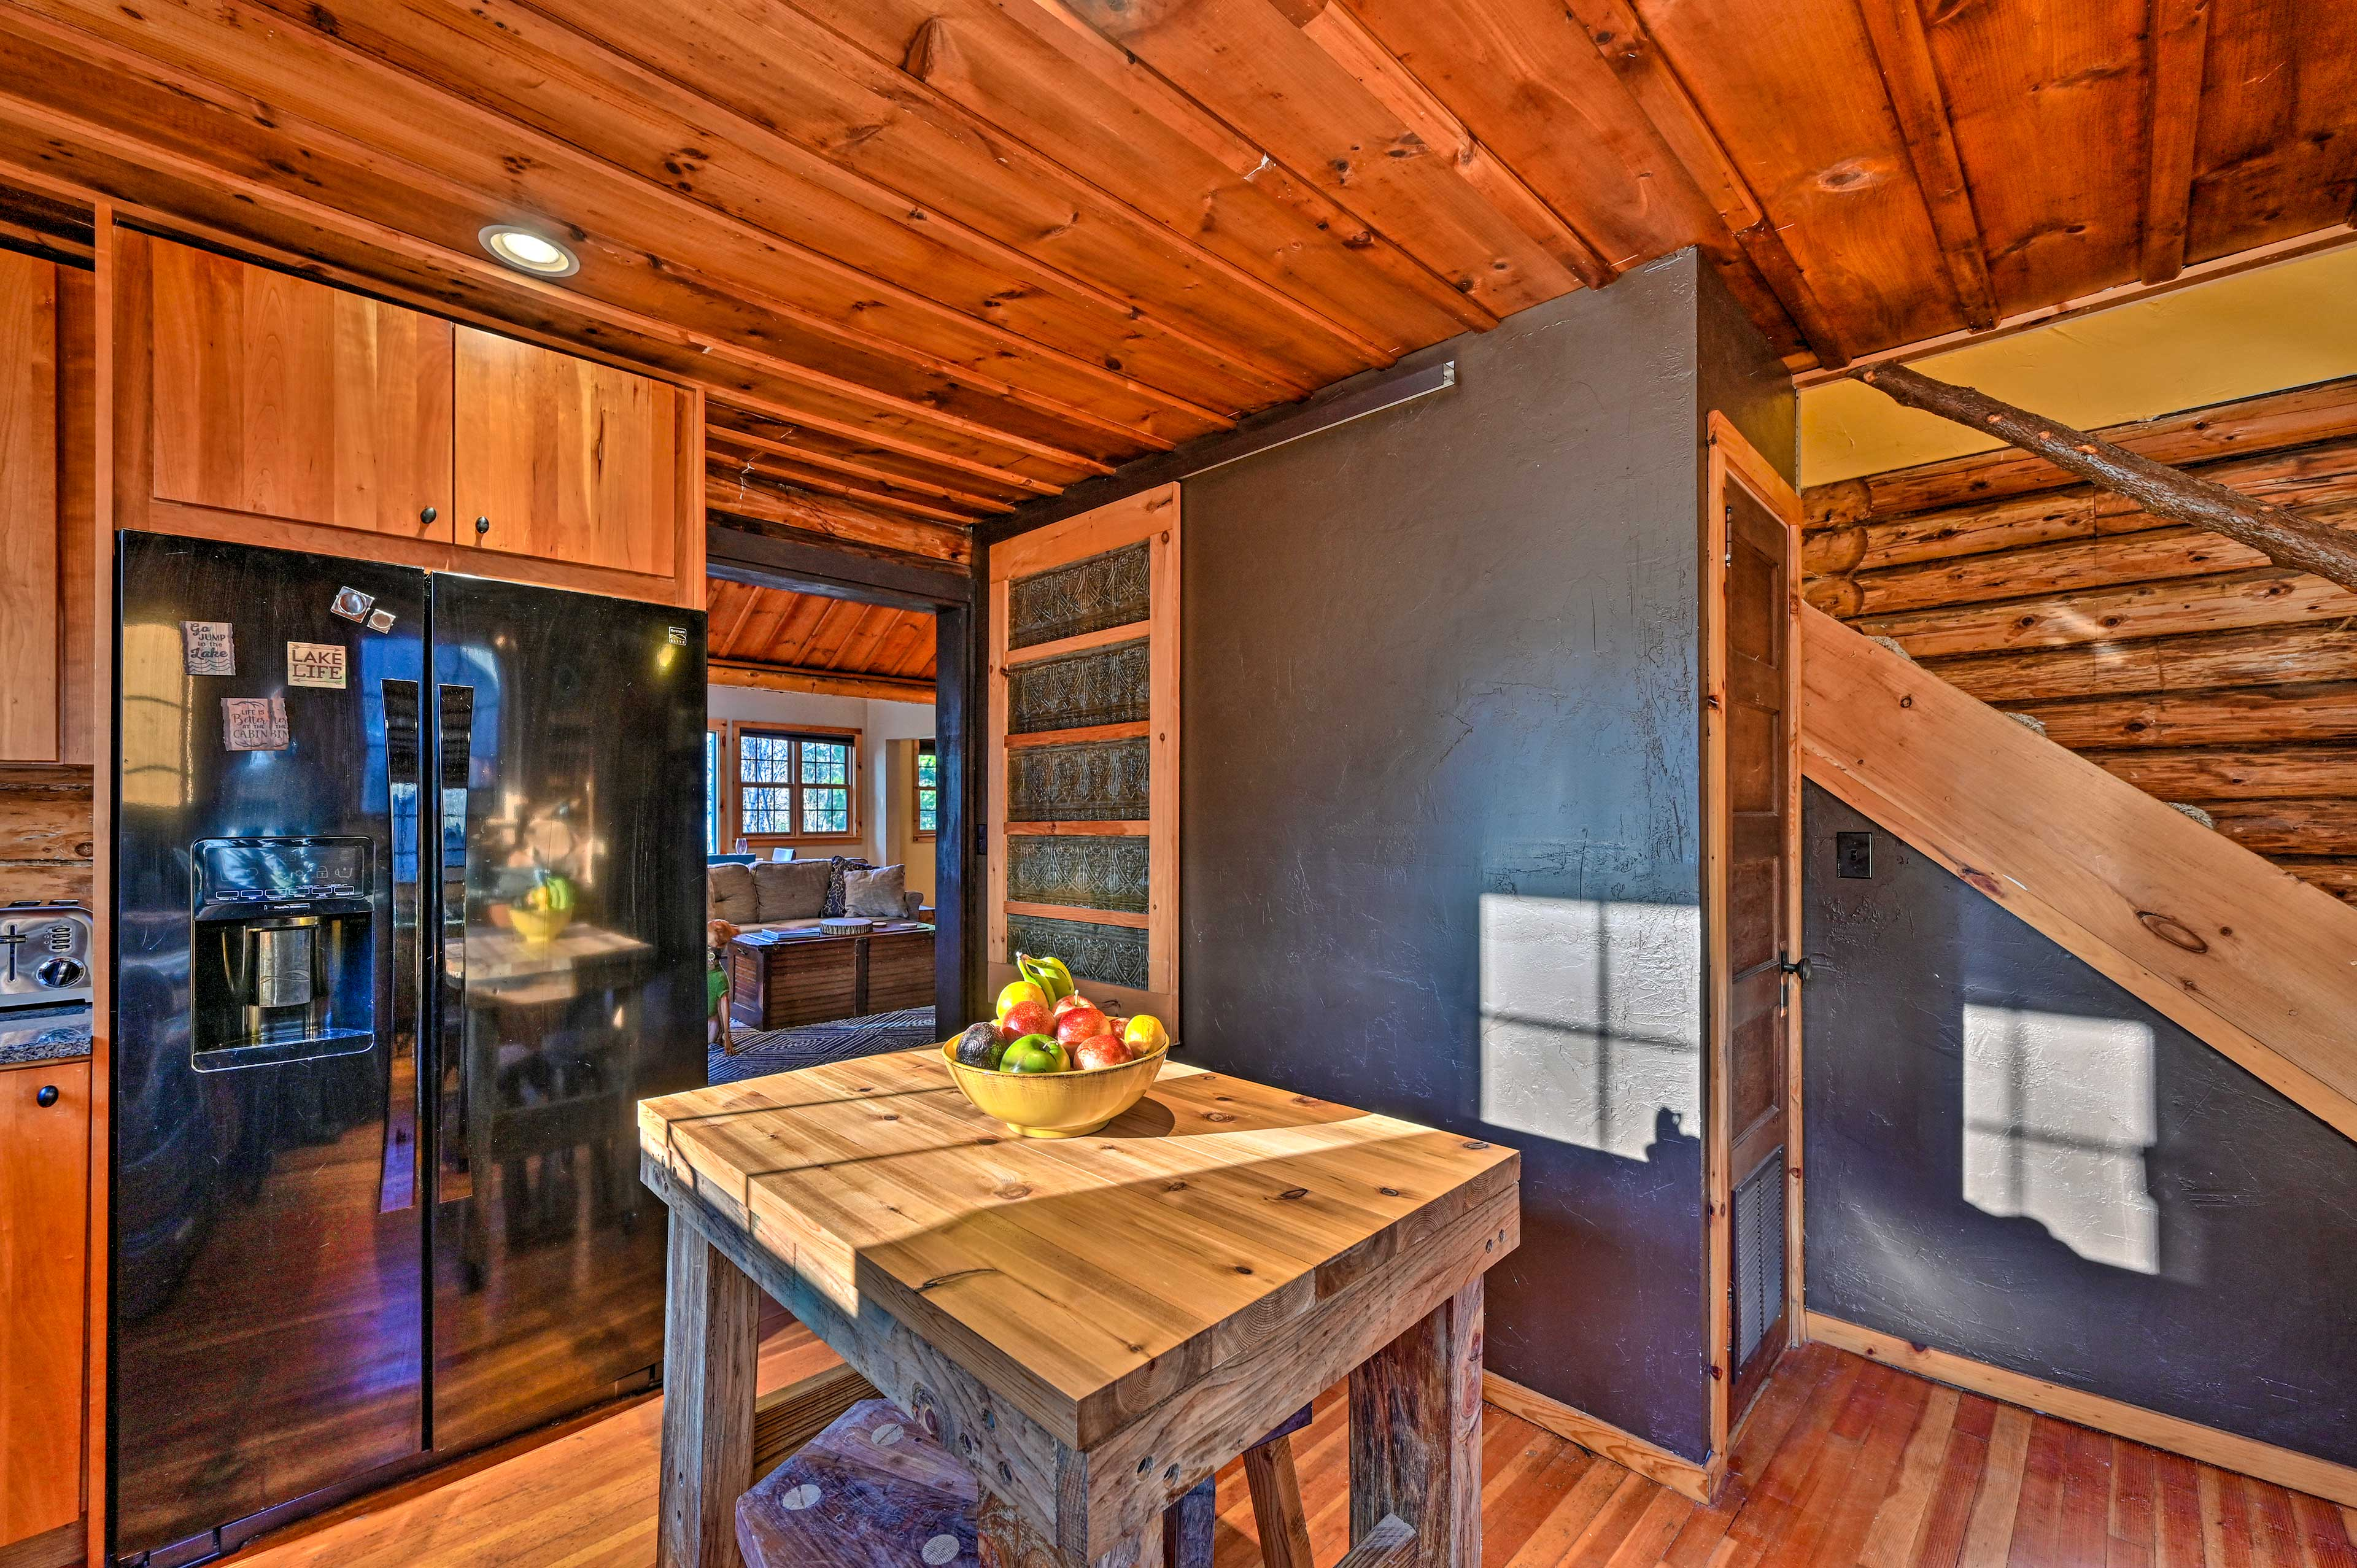 Admire the authentic wood accents and vaulted ceilings.